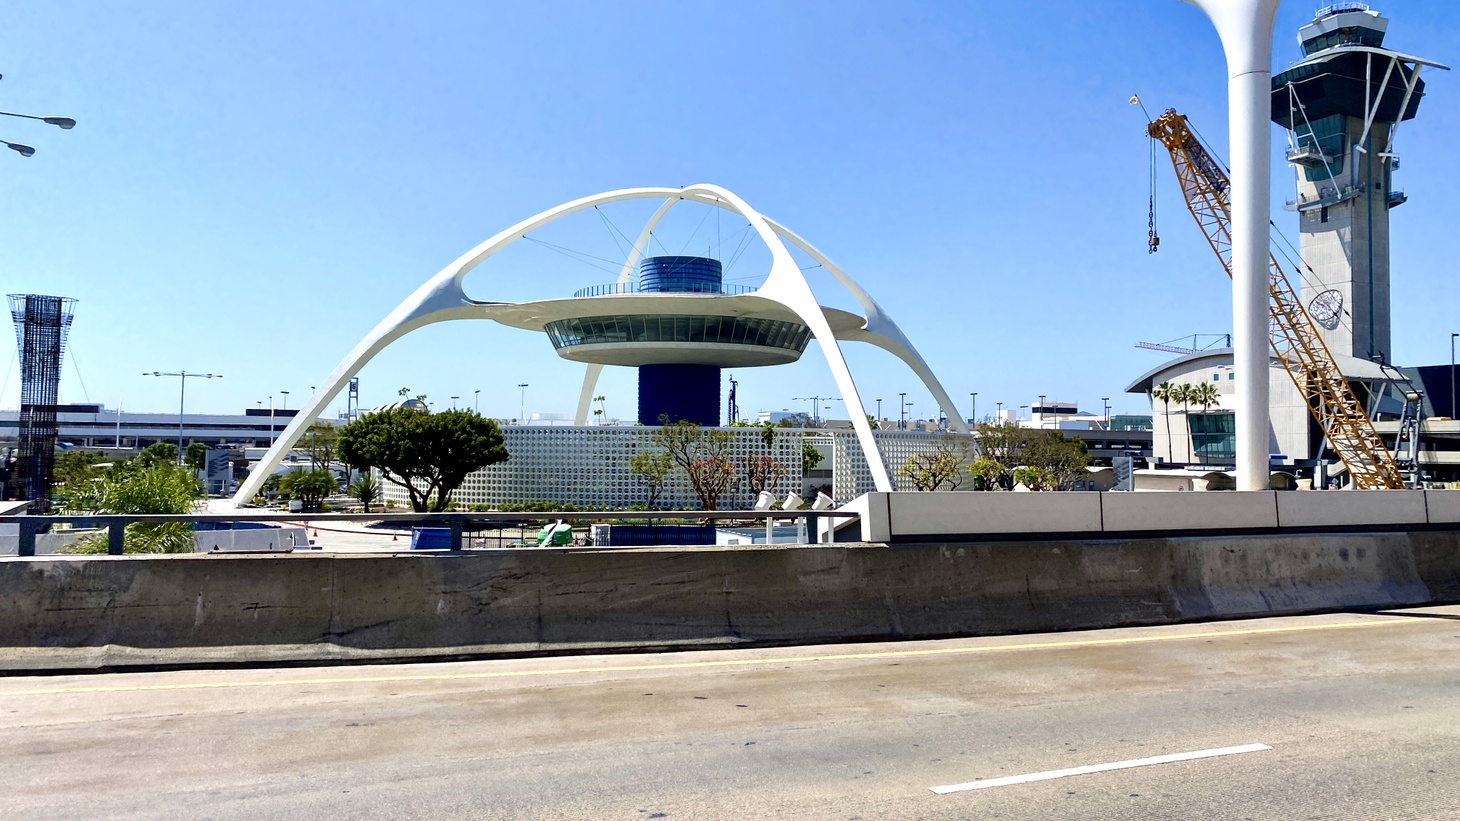 Los Angeles International Airport (LAX) is offering COVID-19 tests for a fee, and people can expect results within 24 hours.